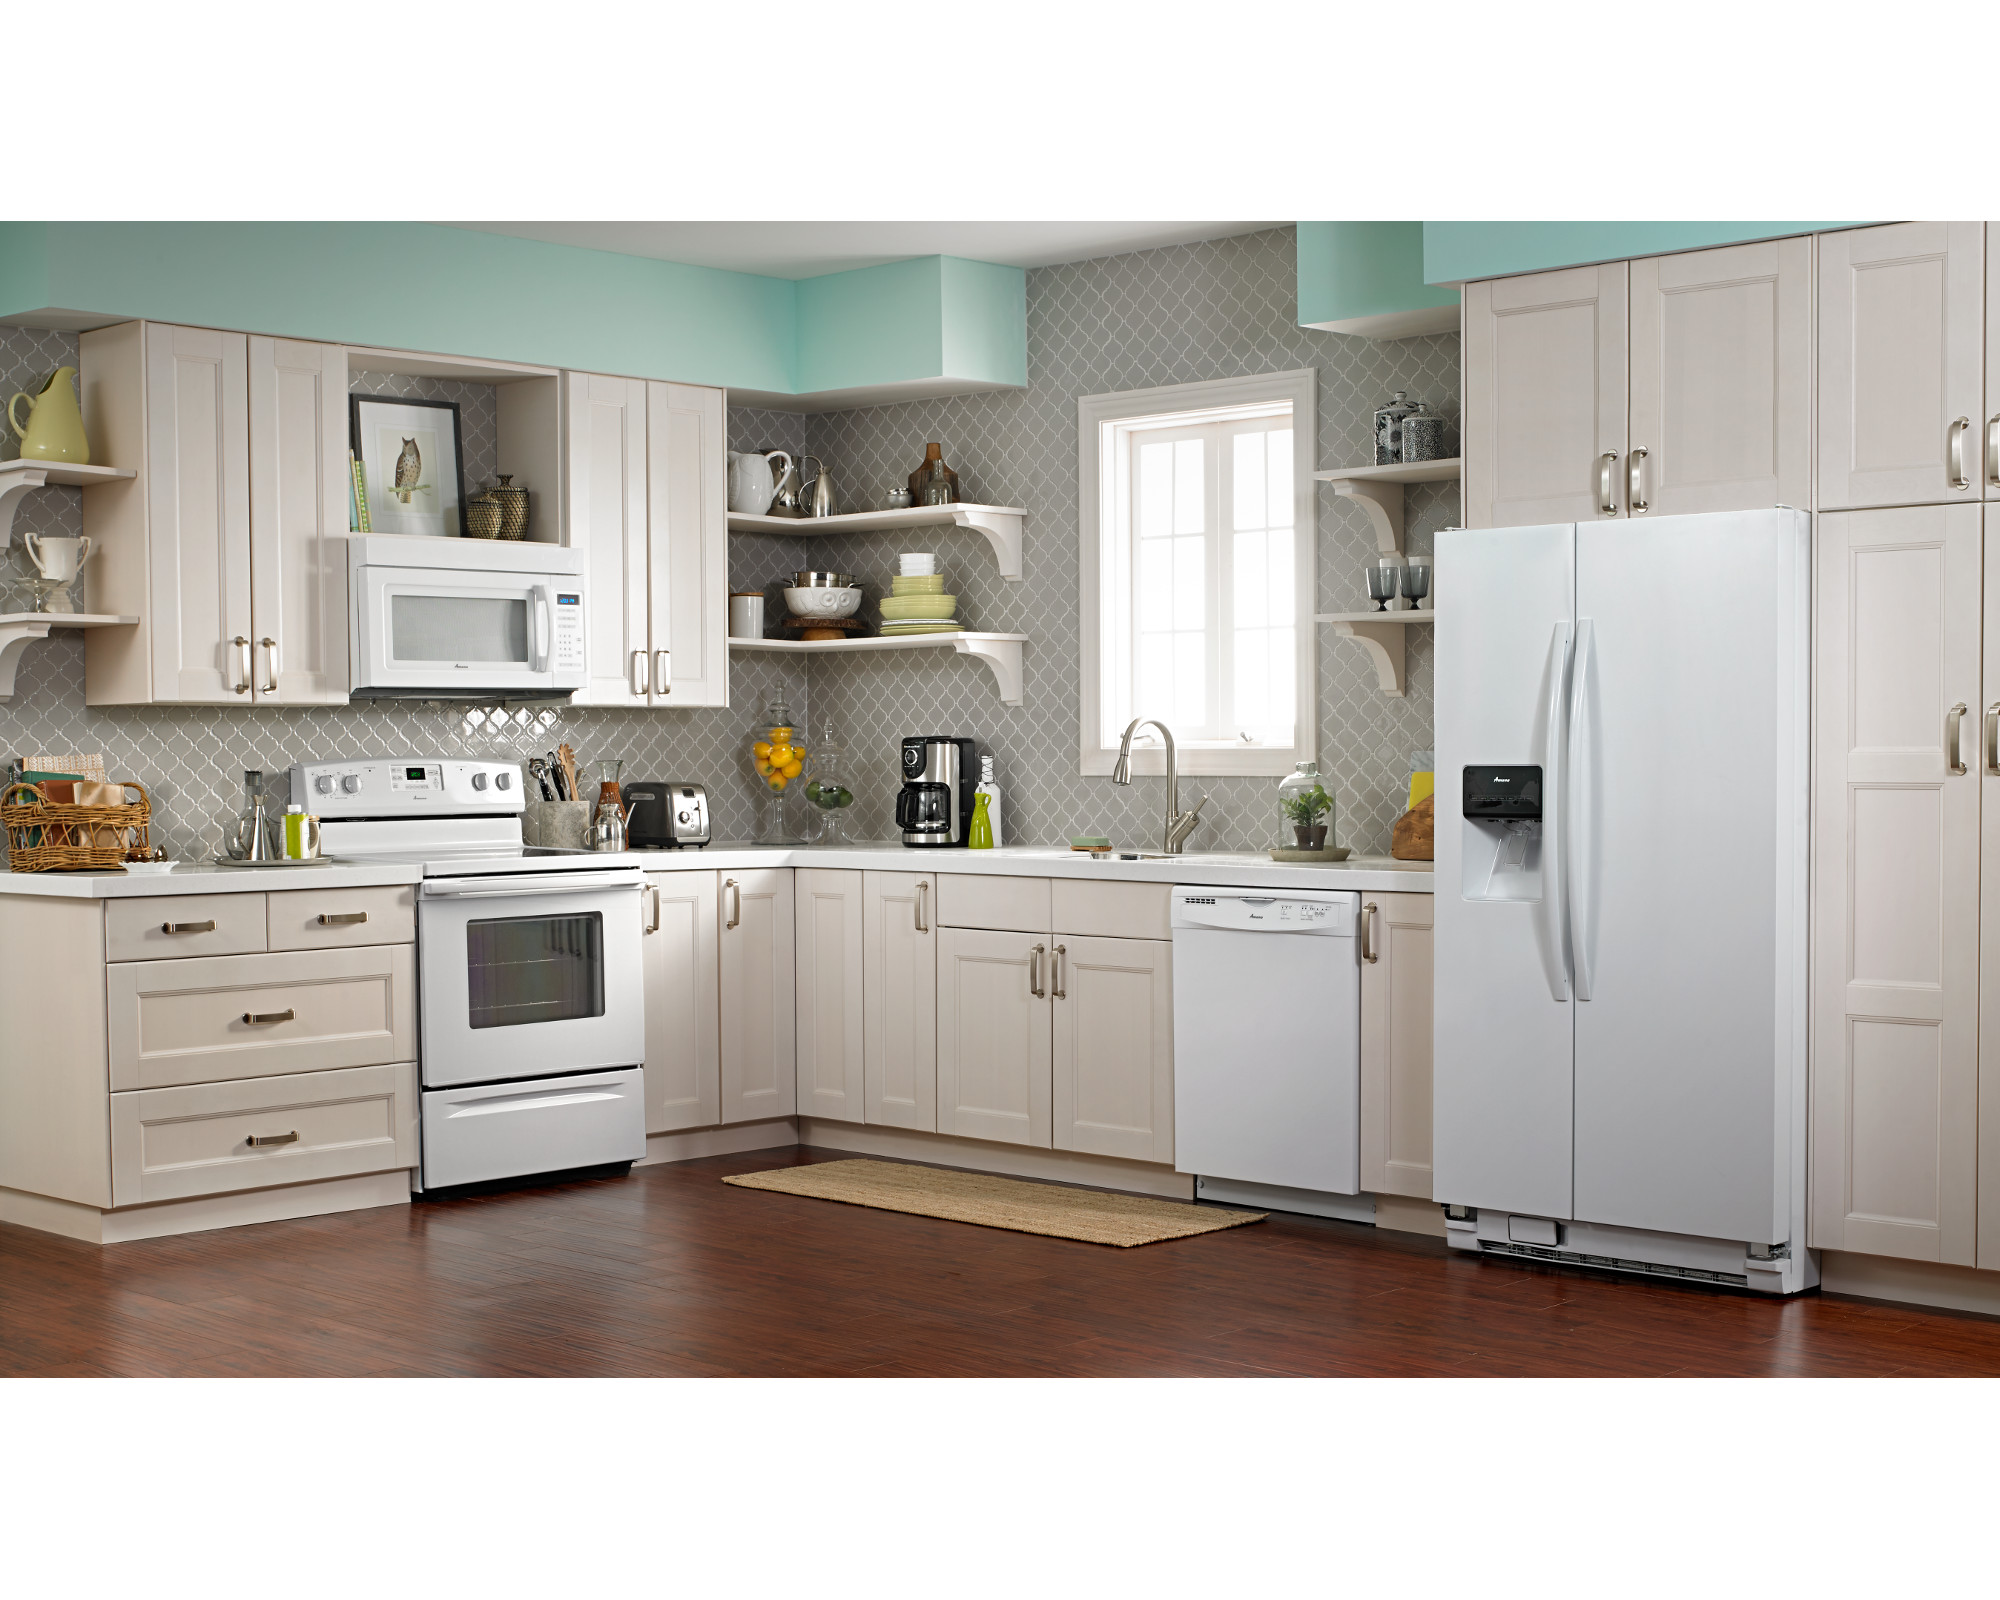 Amana 4.8 cu. ft. Self-Cleaning Electric Range - White